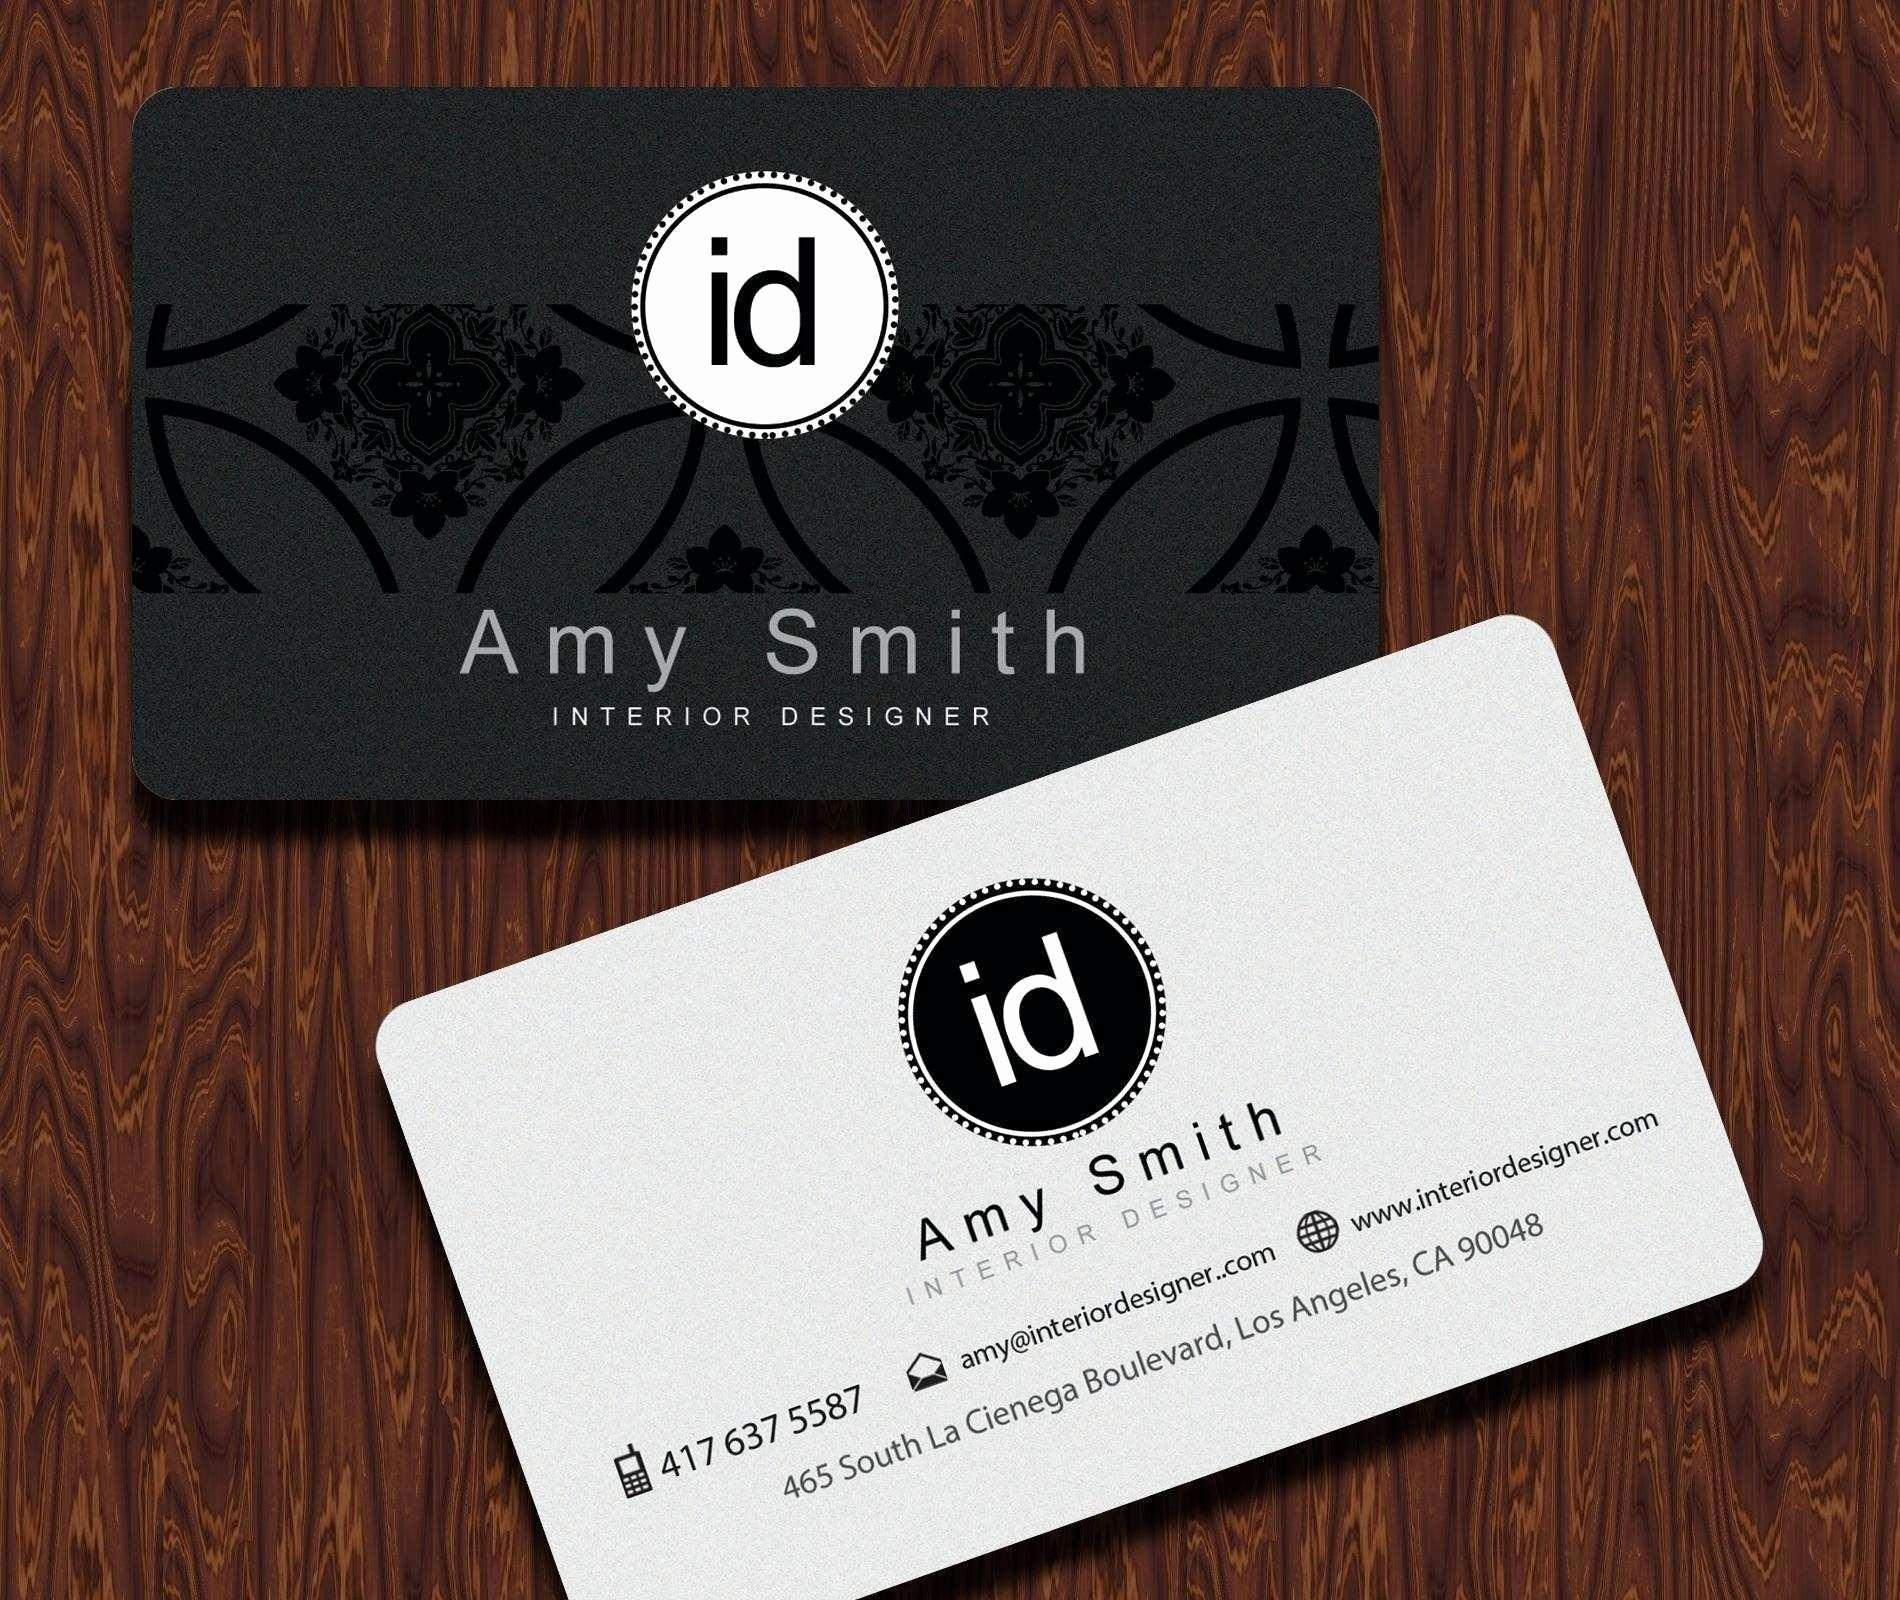 Business Card Maker Online Free Printable Elegant Business Card - Card Maker Online Free Printable